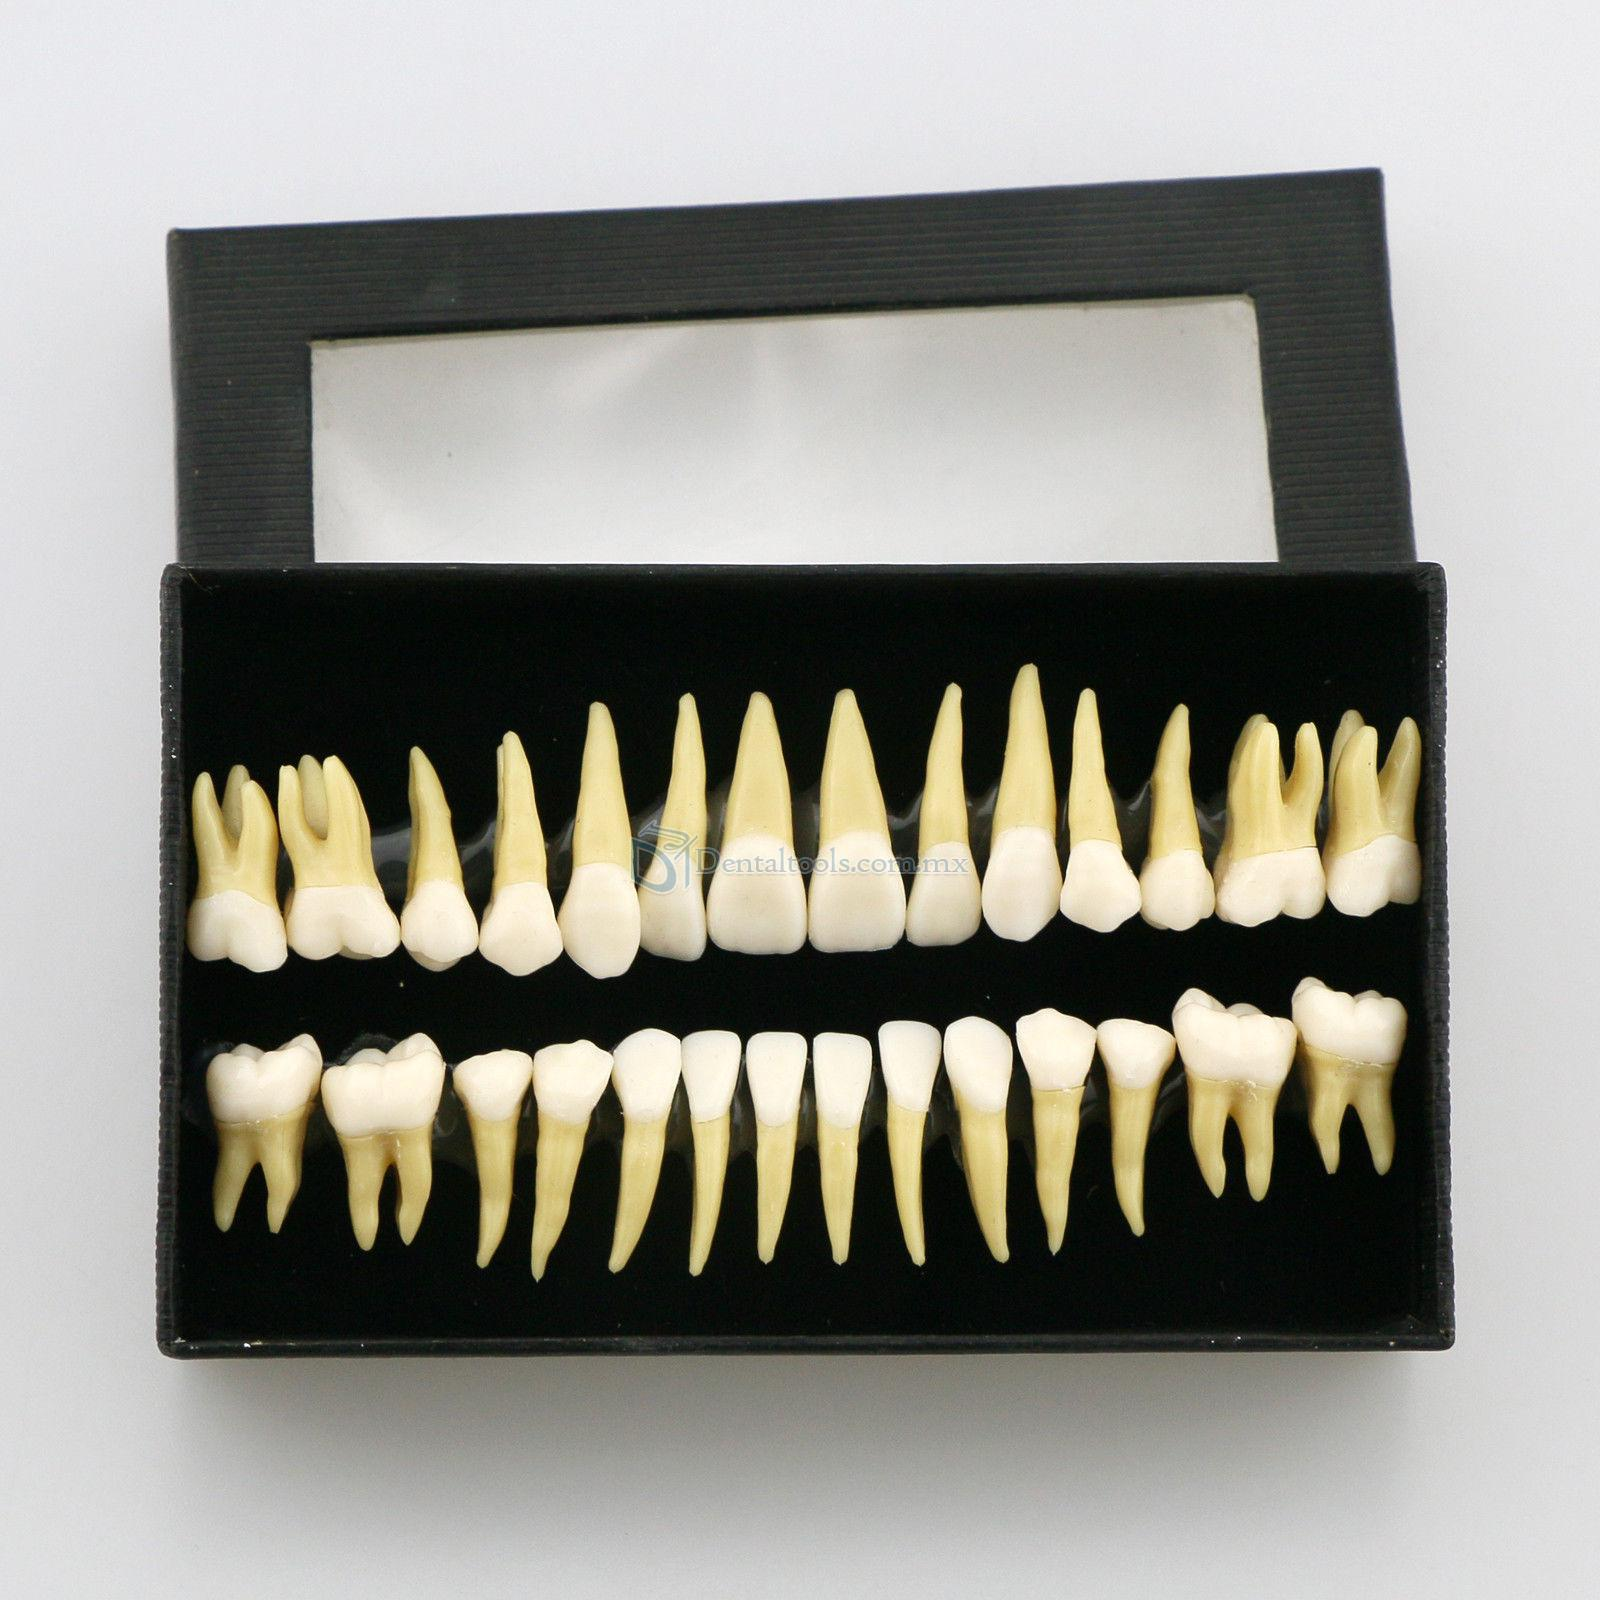 28 Pcs 1:1 Permanente completa dental modelo dientes #7008